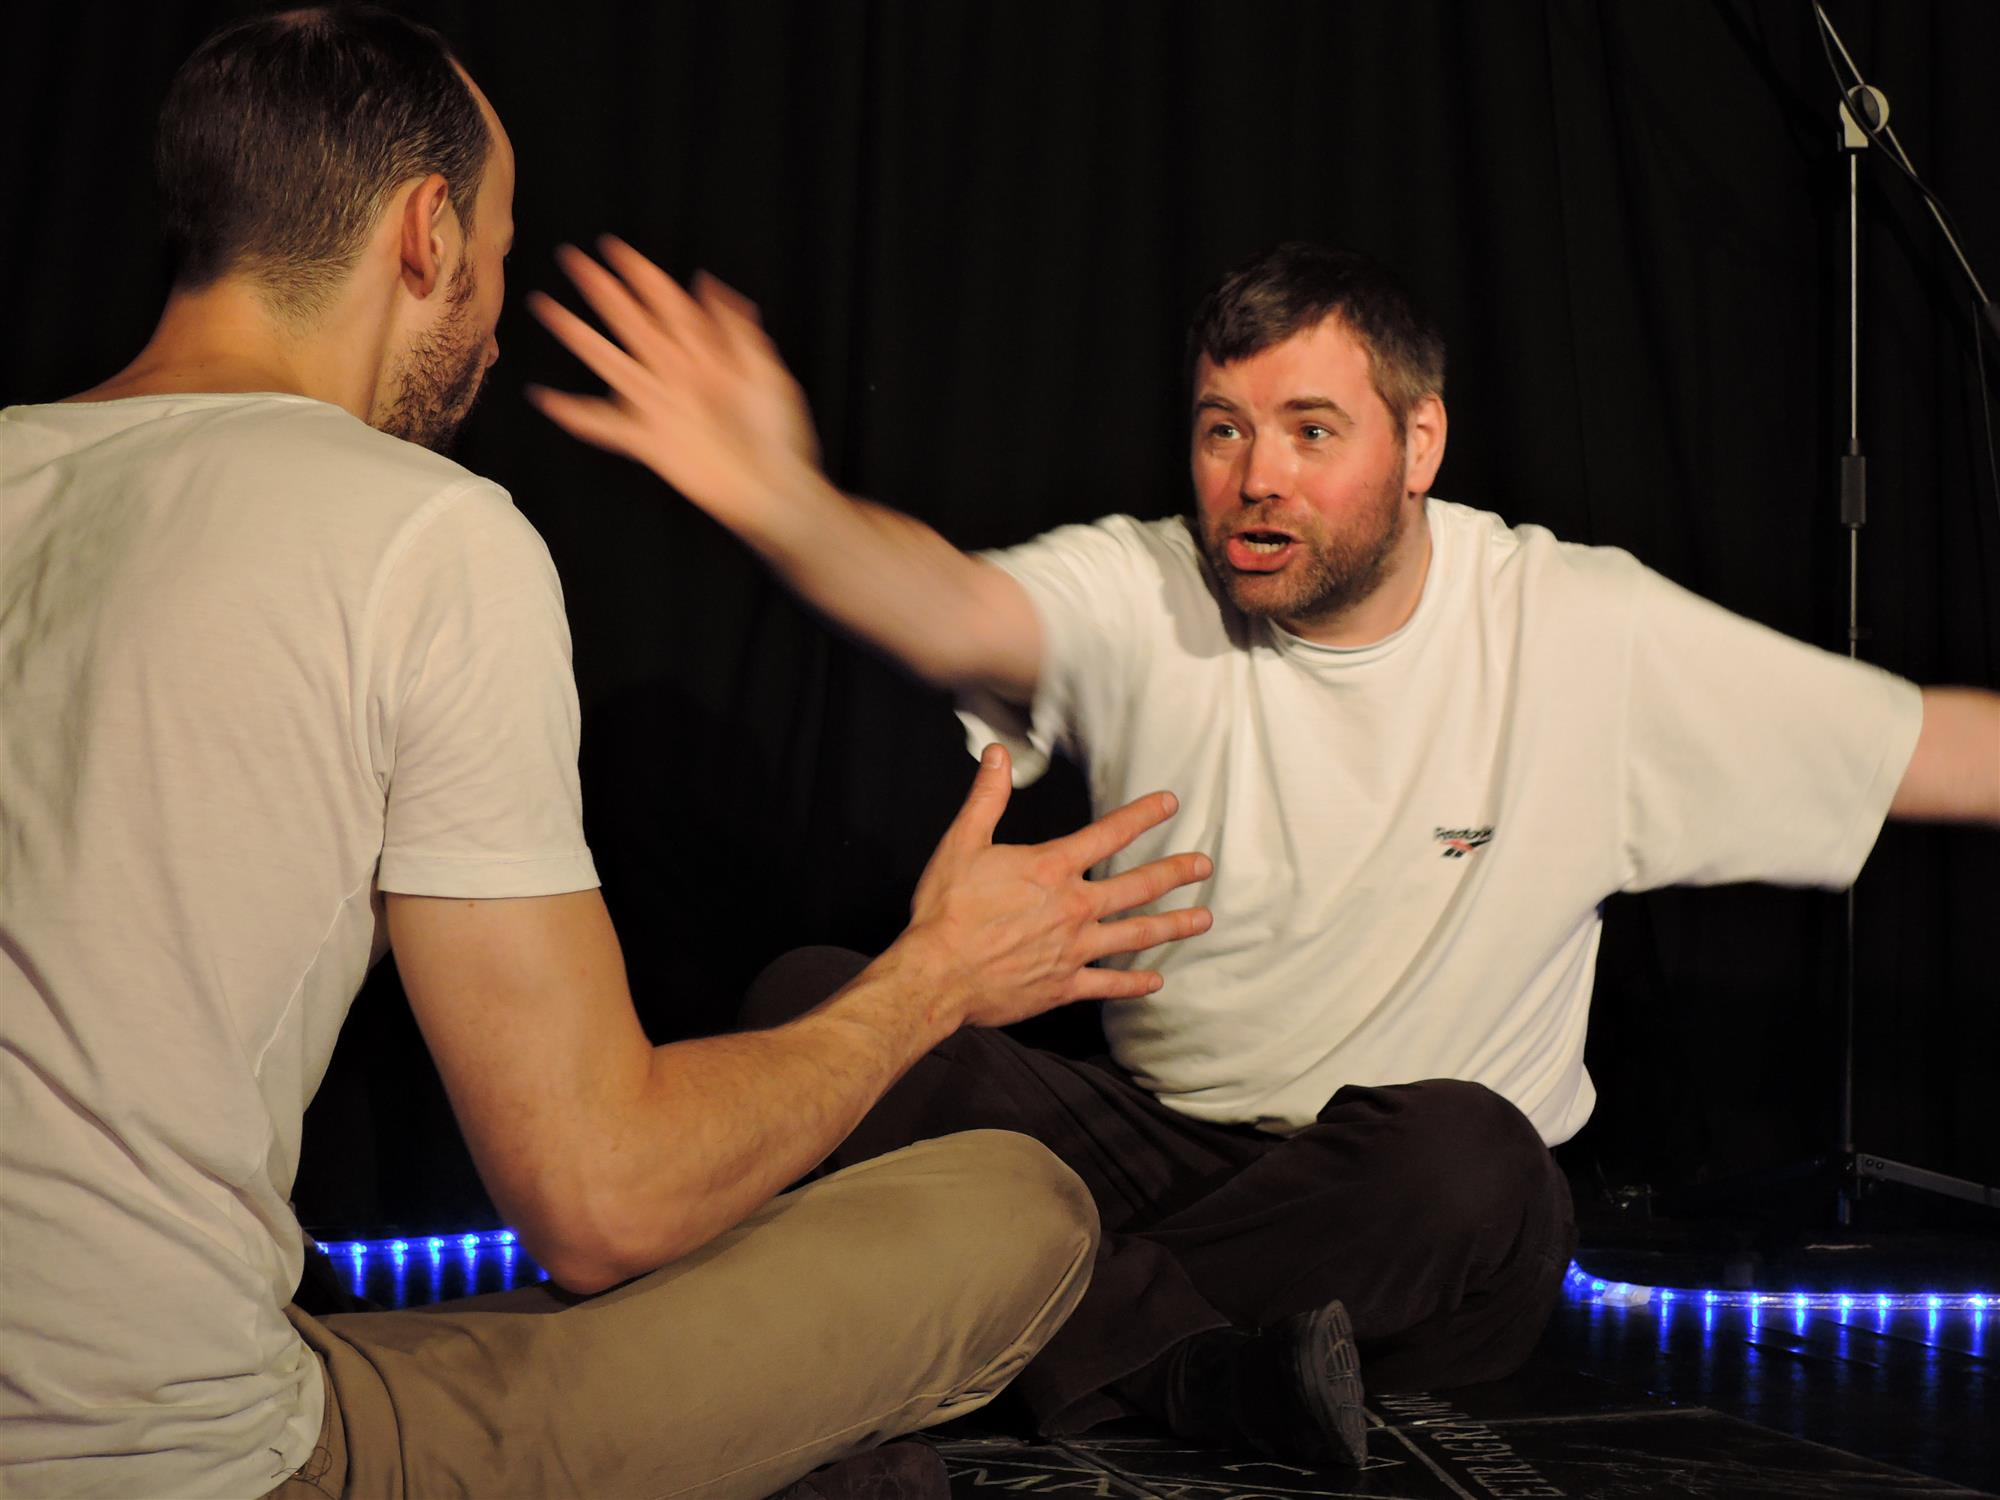 Both performers sat opposite one another in the 'magic circle' onstage. A white man waving his hand in front of the other male performer's face